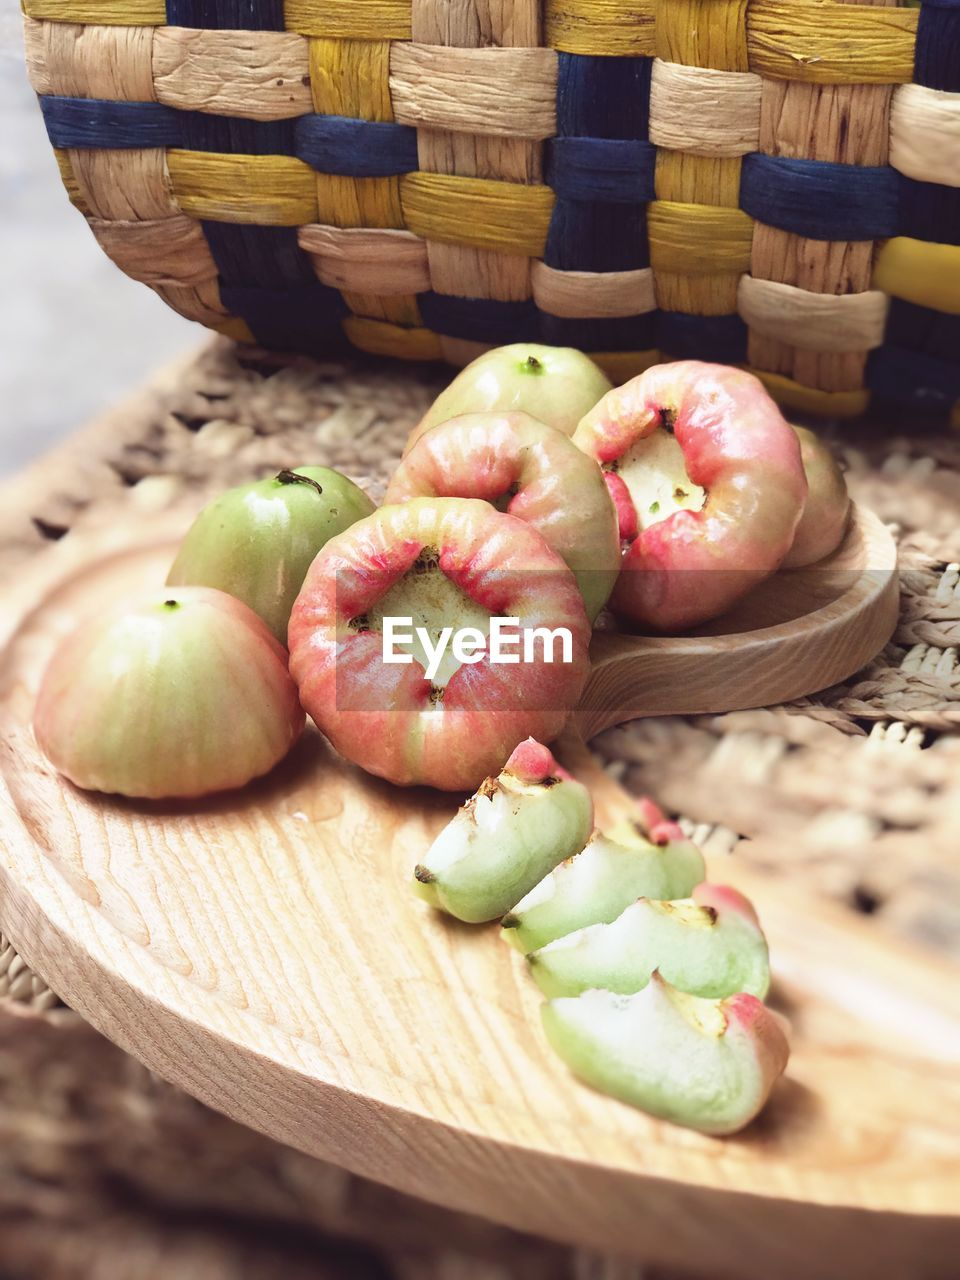 food and drink, basket, freshness, food, still life, healthy eating, container, no people, wood - material, wellbeing, fruit, wicker, close-up, high angle view, indoors, table, group of objects, group, focus on foreground, apple - fruit